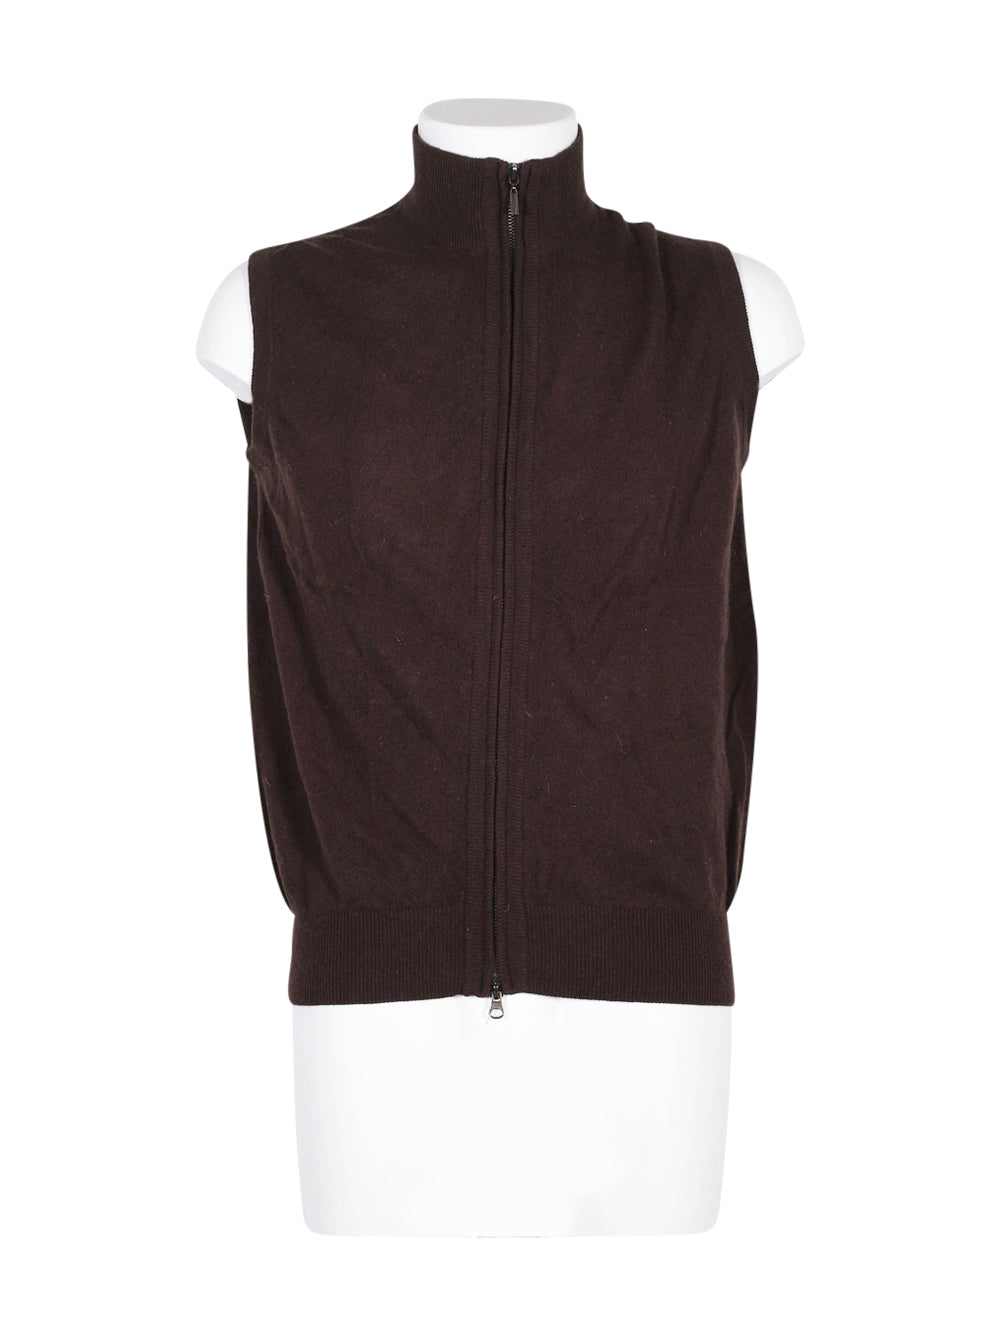 Front photo of Preloved invidia uomo Brown Man's waistcoat - size 38/M